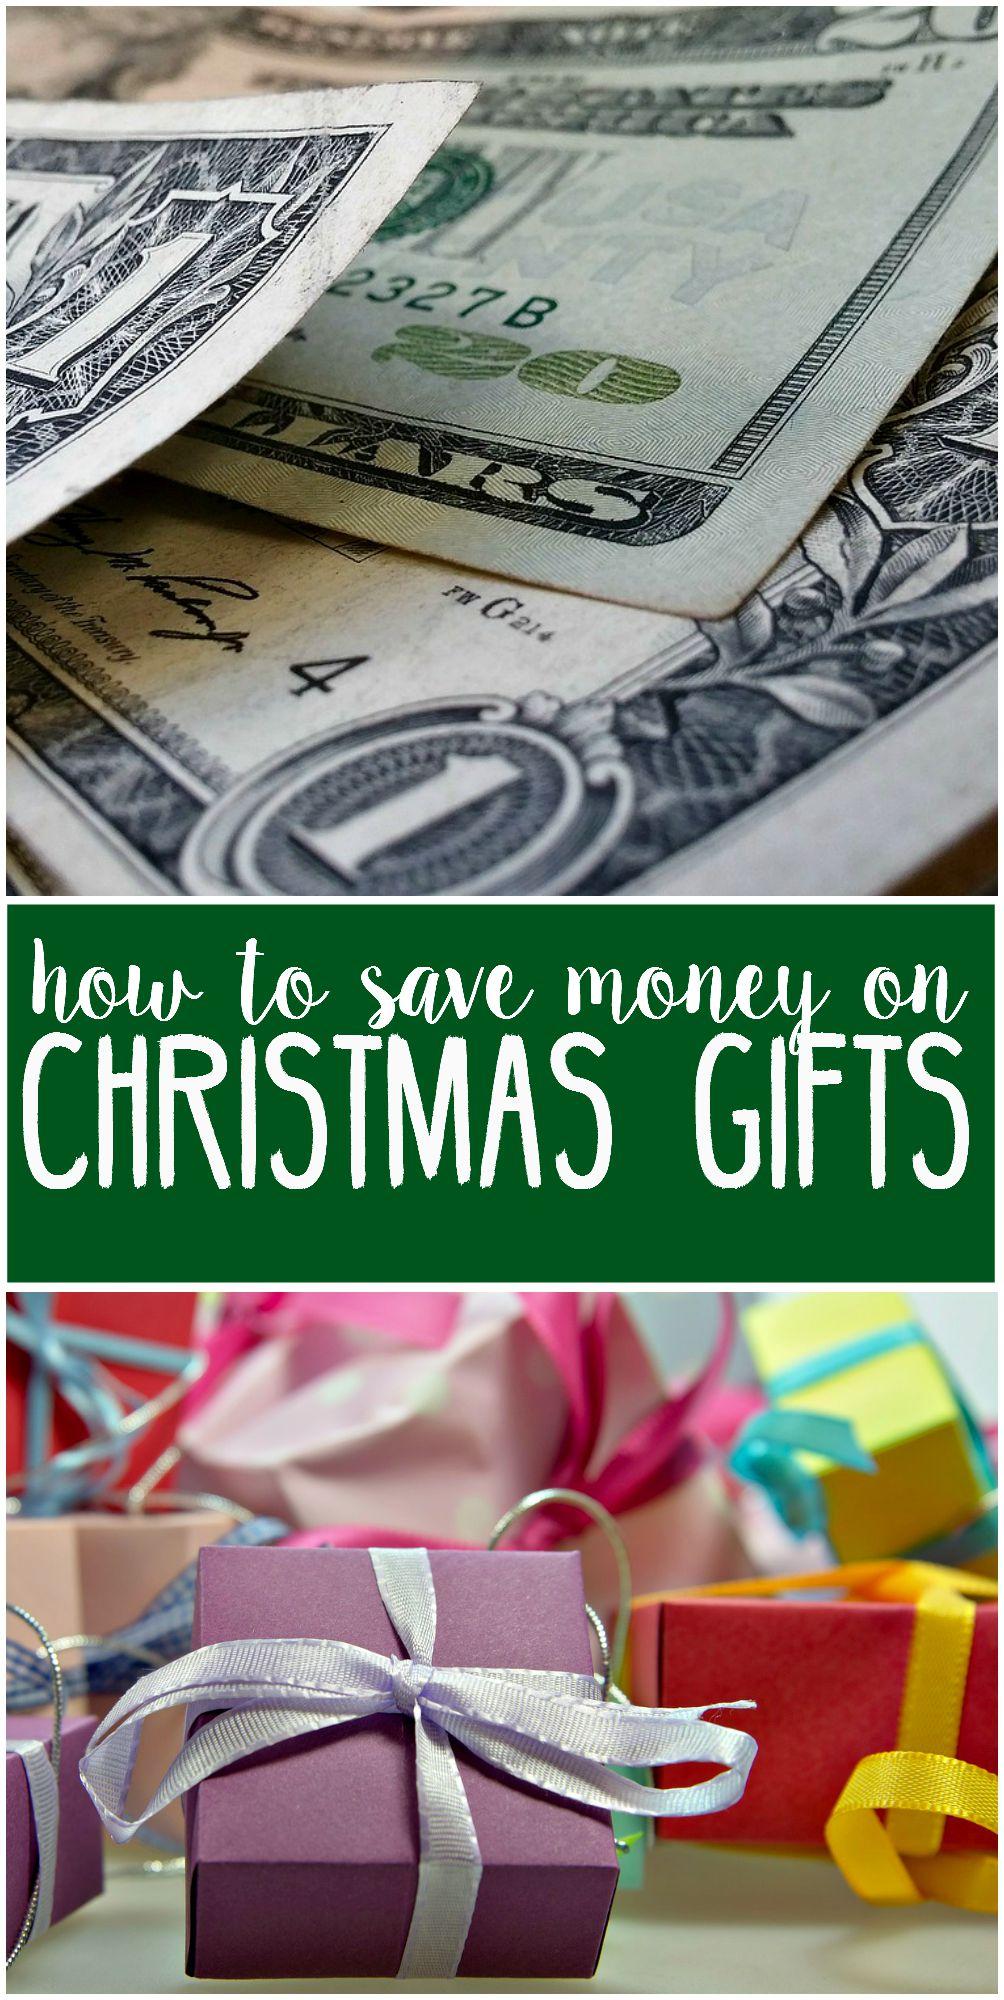 Christmas shopping can add up quickly and soon enough it may seem like the season of debt. Here are some tips and advice on how to save on Christmas gifts.